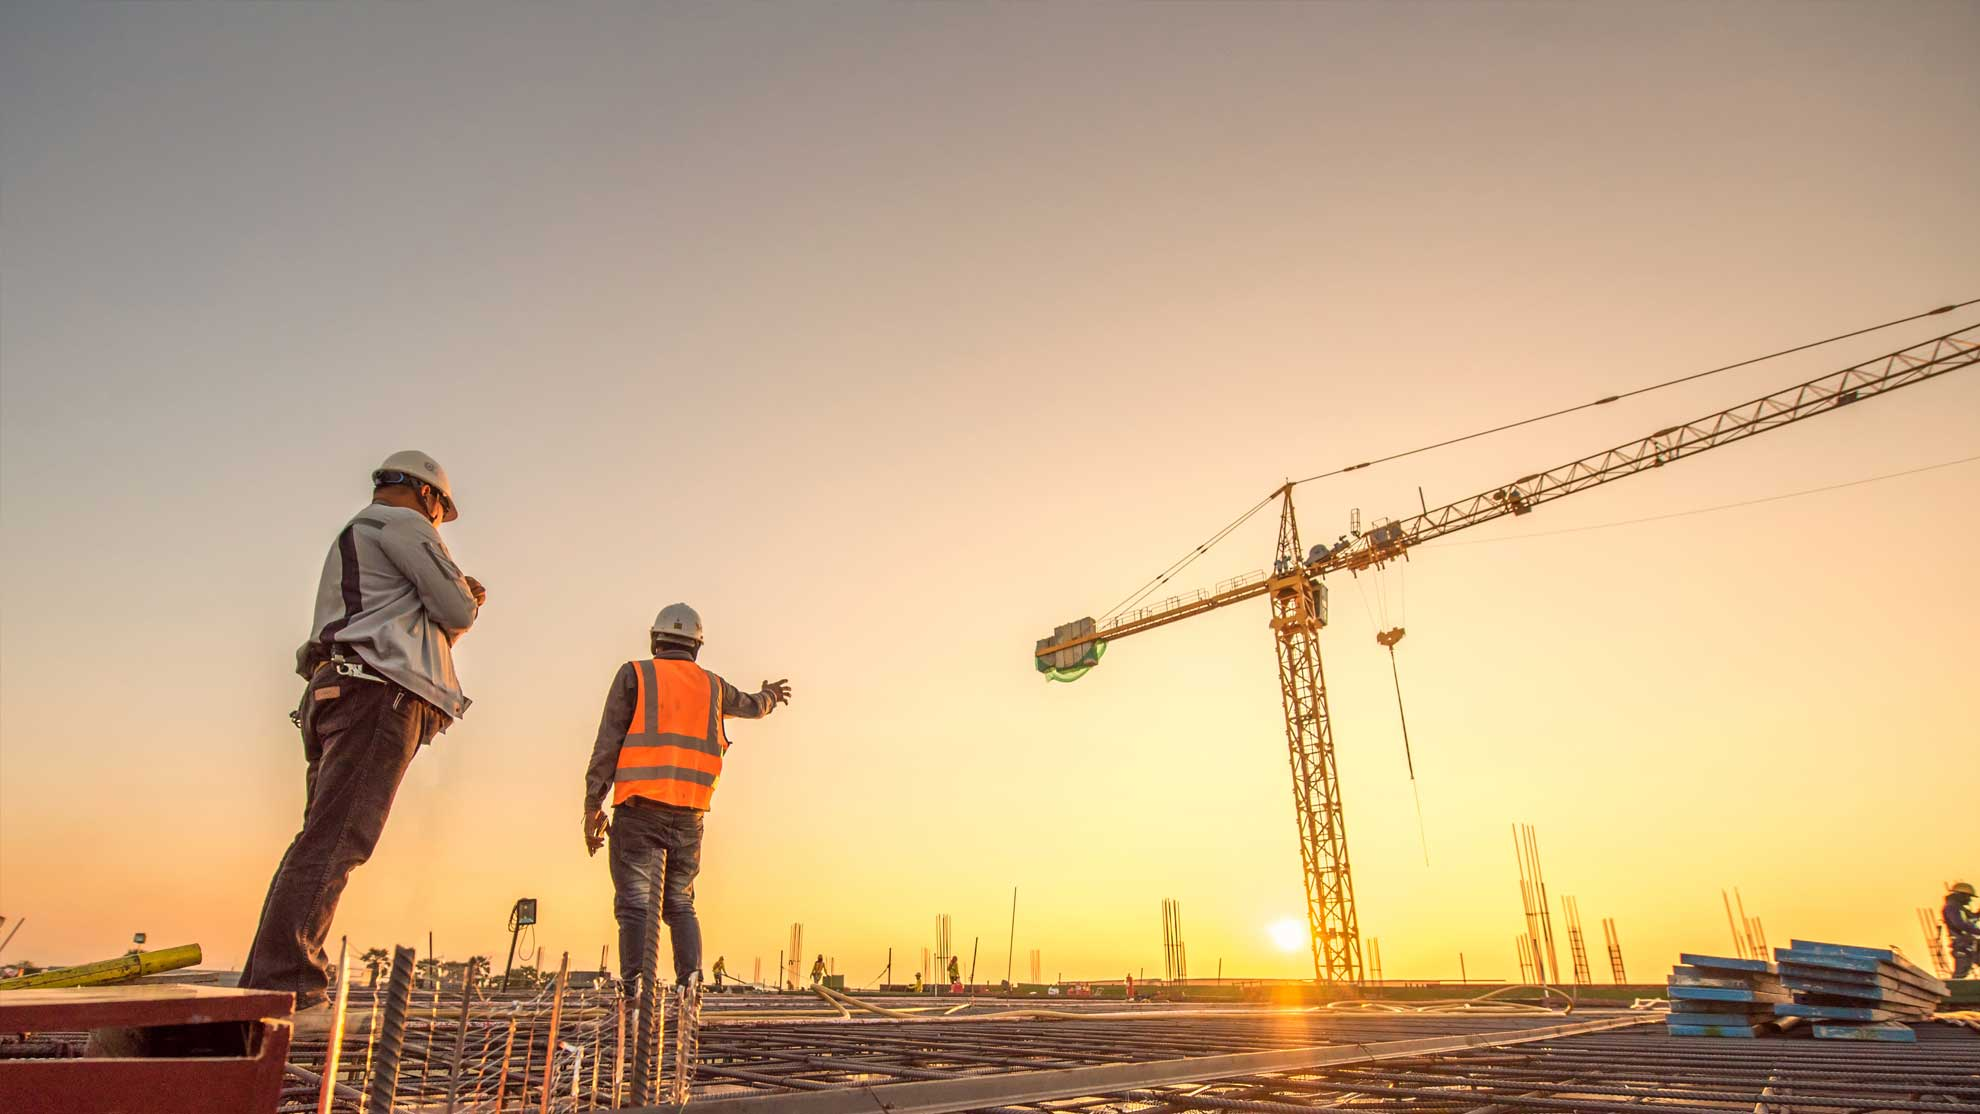 Construction & Infrastructure - Asia Market Growth